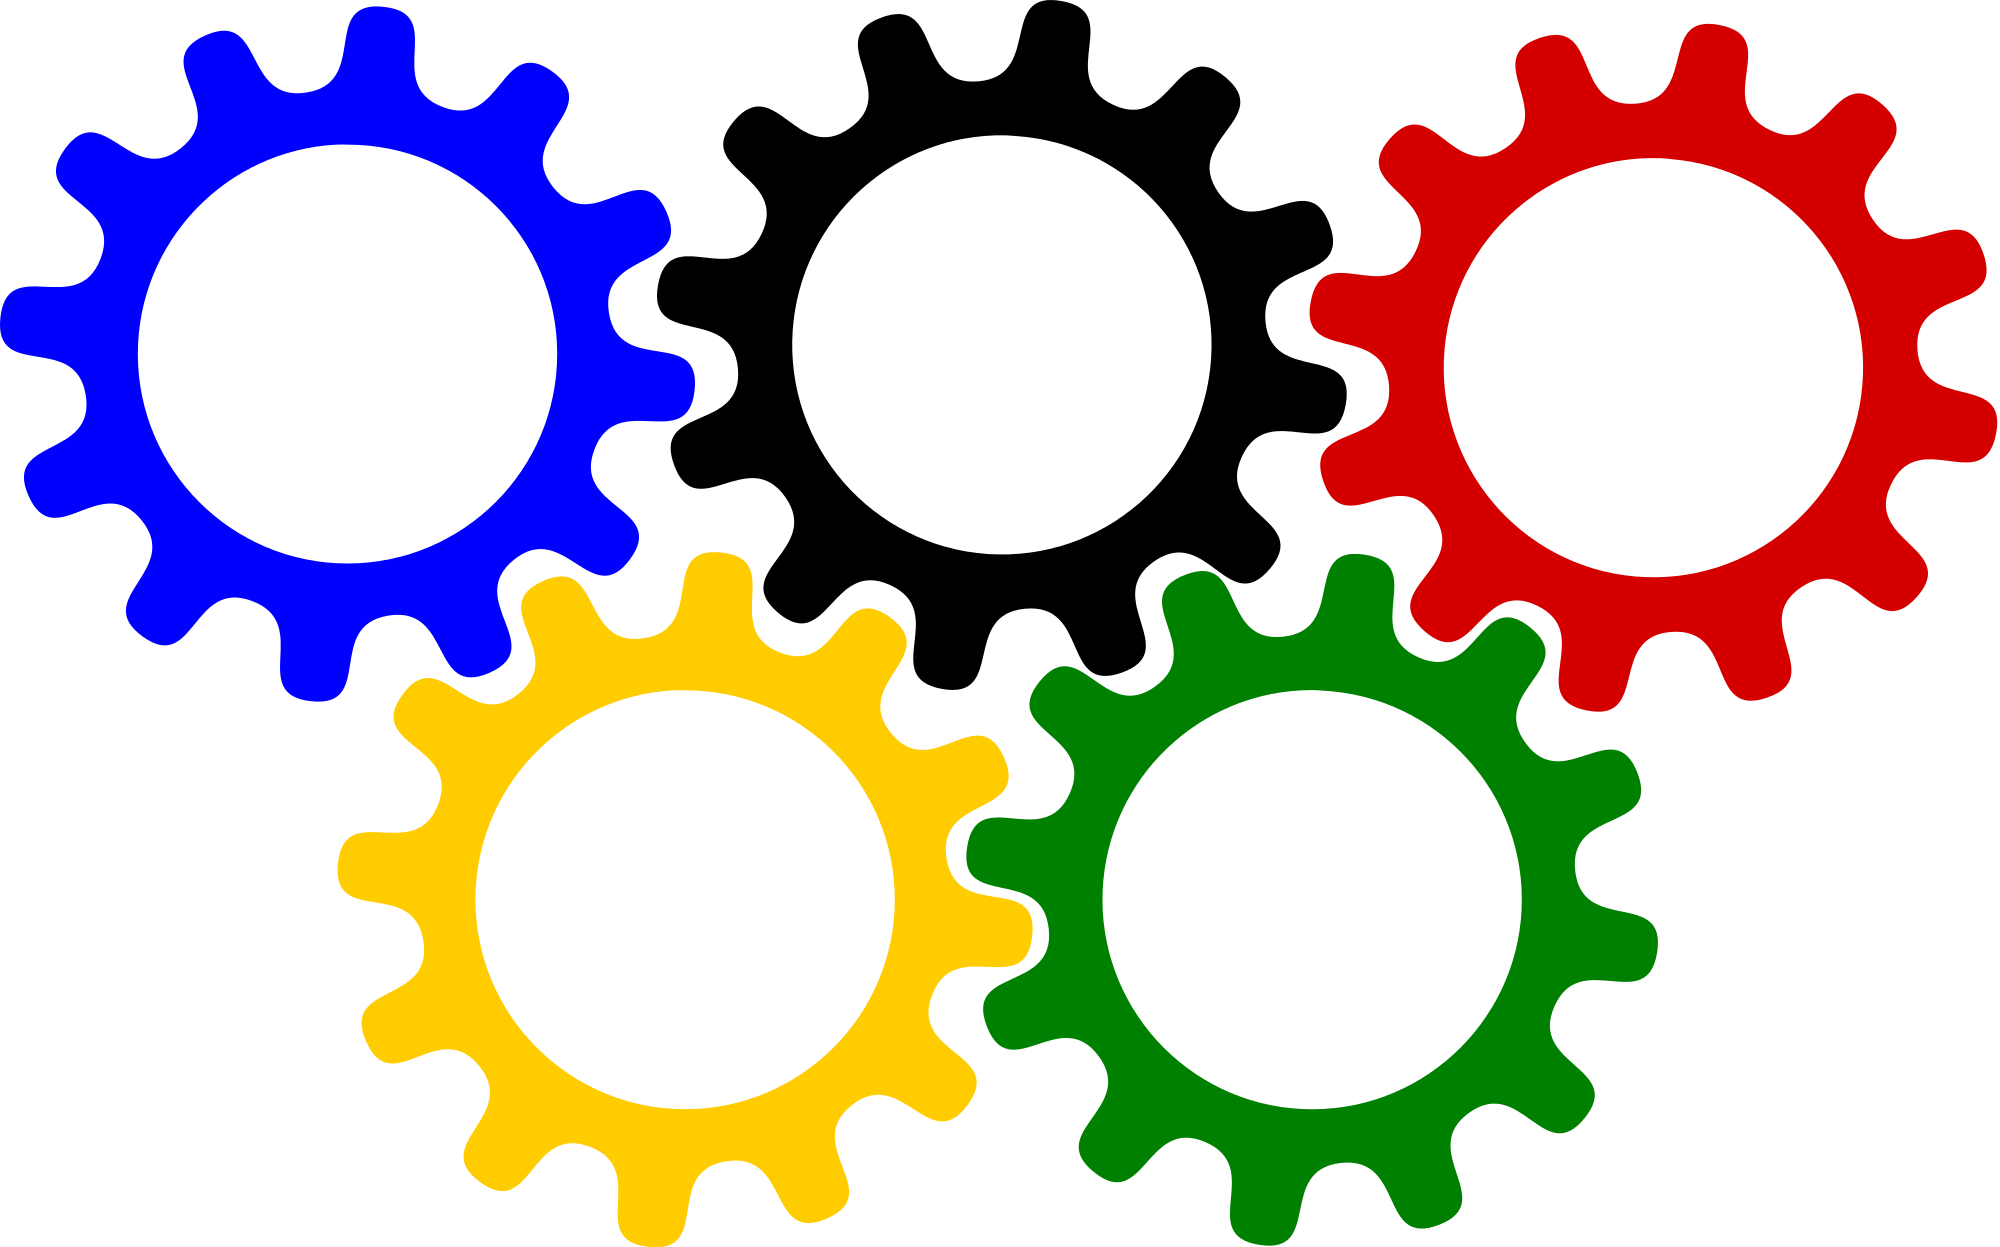 Gear clipart colorful gear. Gears png transparent images